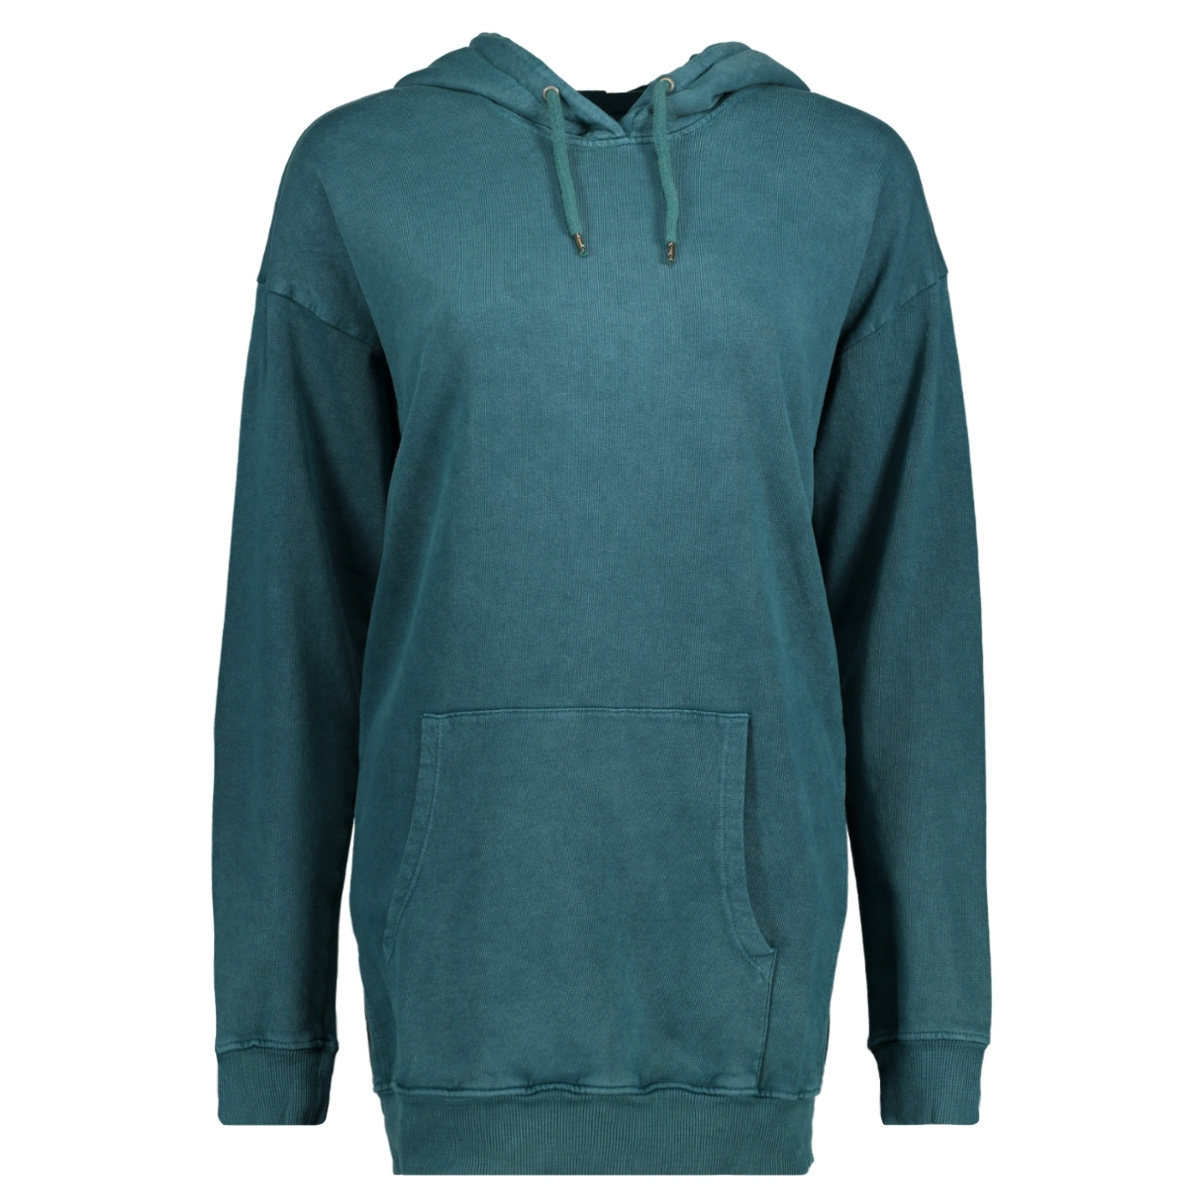 objkendall sweat pullover 94 23025723 object sweater deep teal